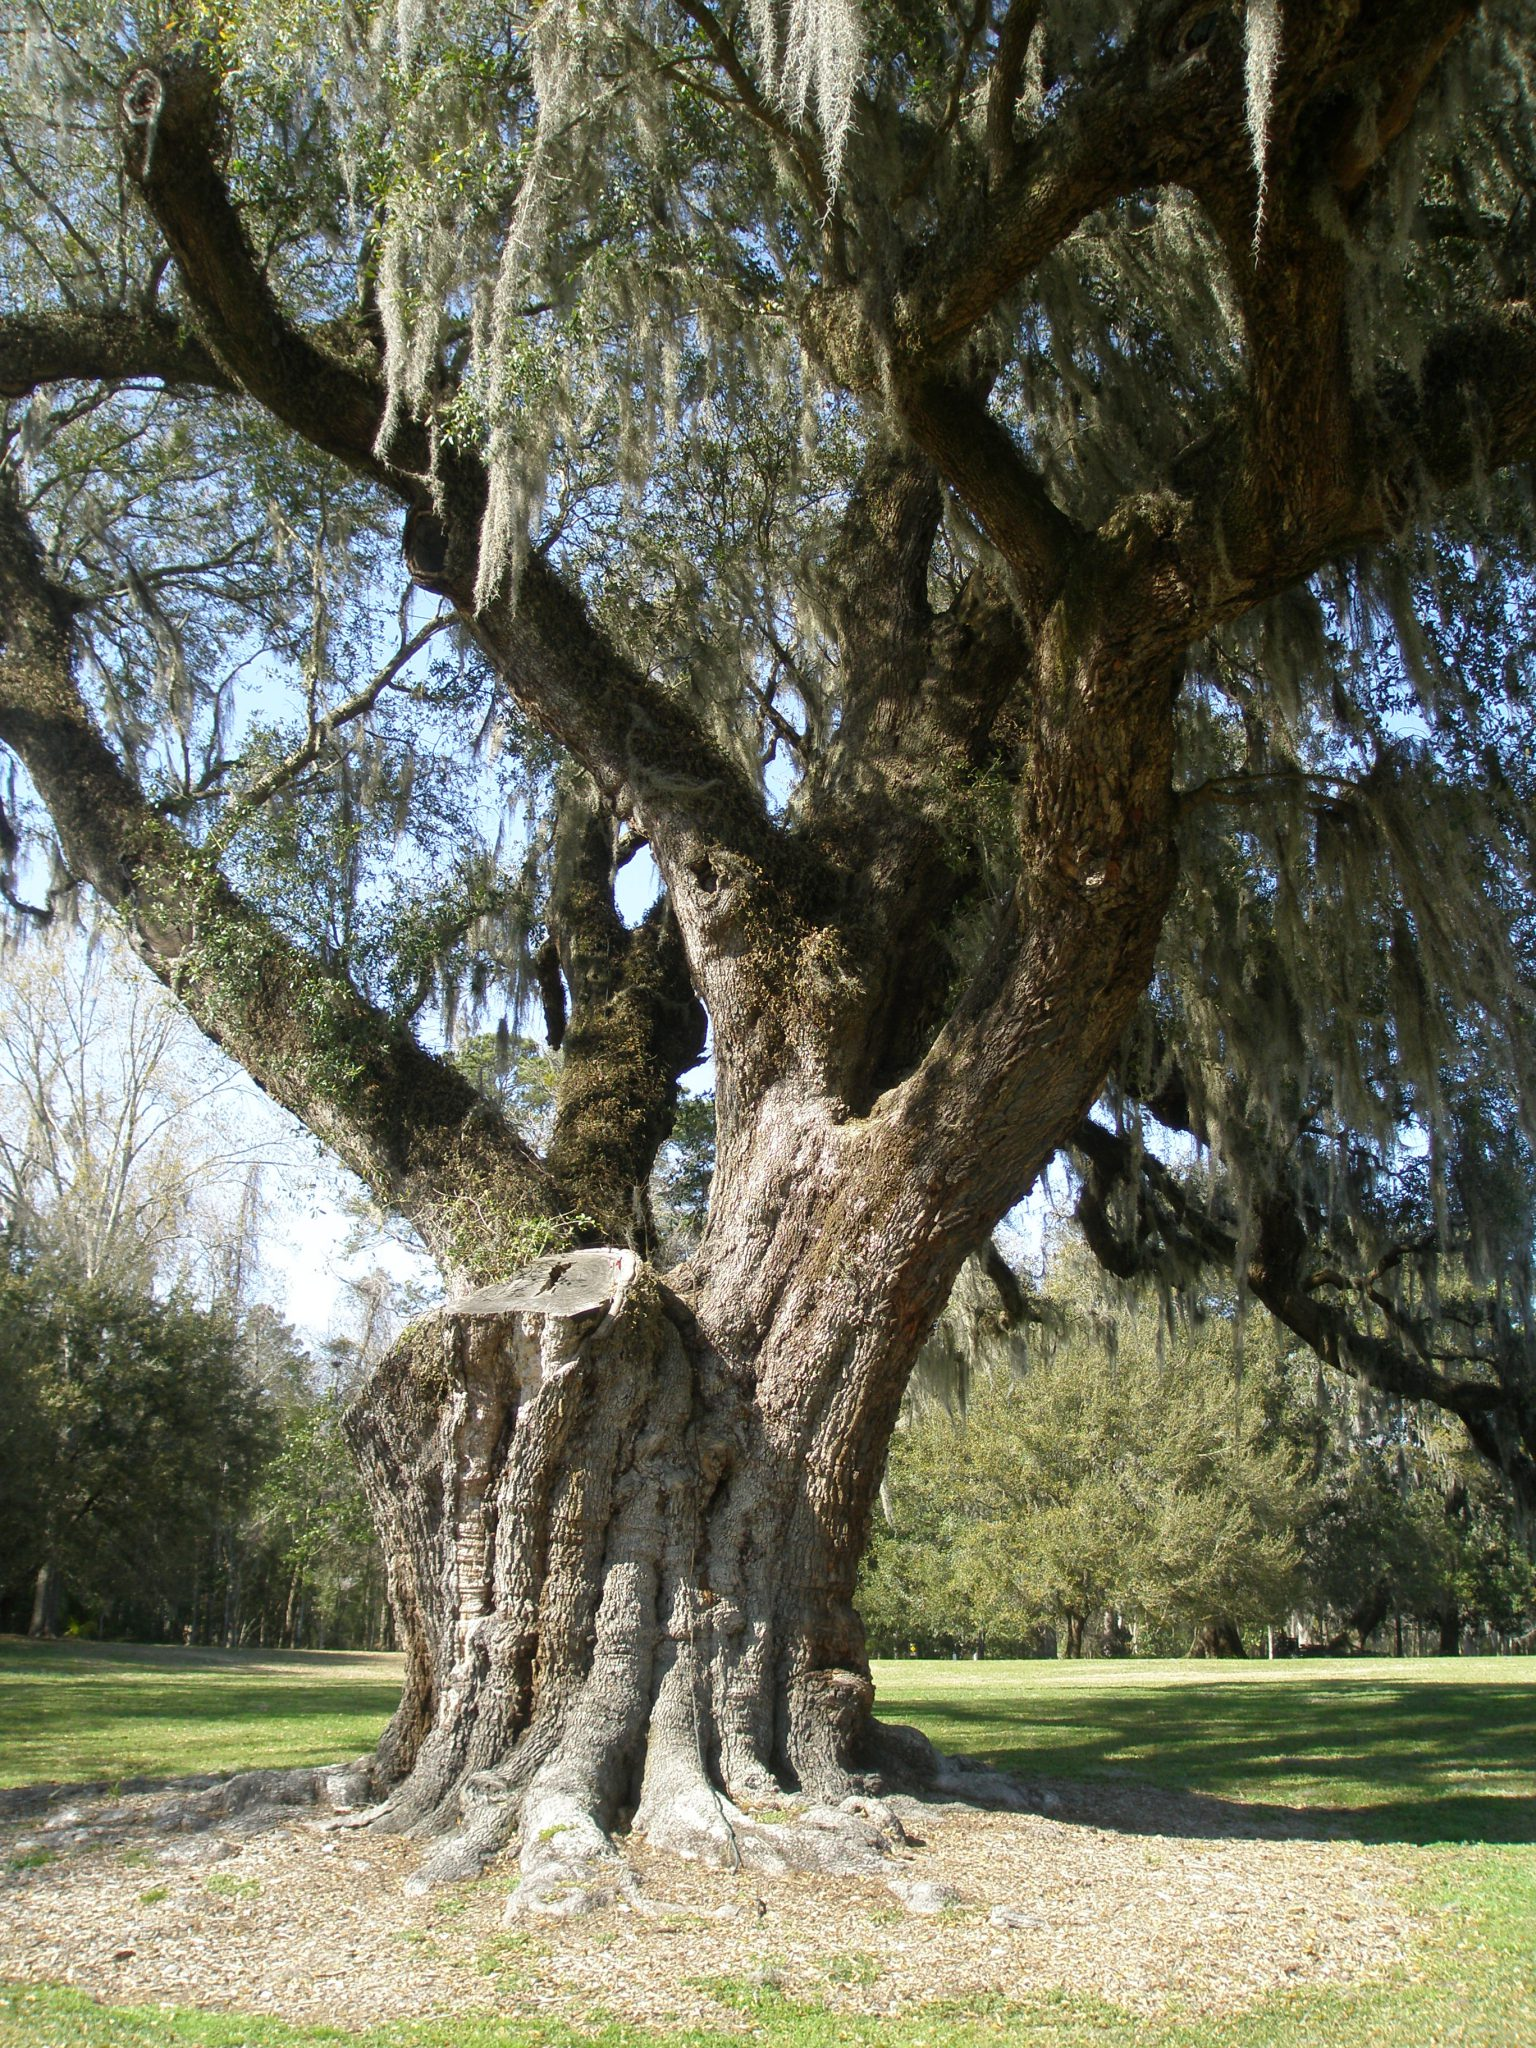 Yet another of the Low Country's Ancient Oaks...battle-scarred, but holding its ground.